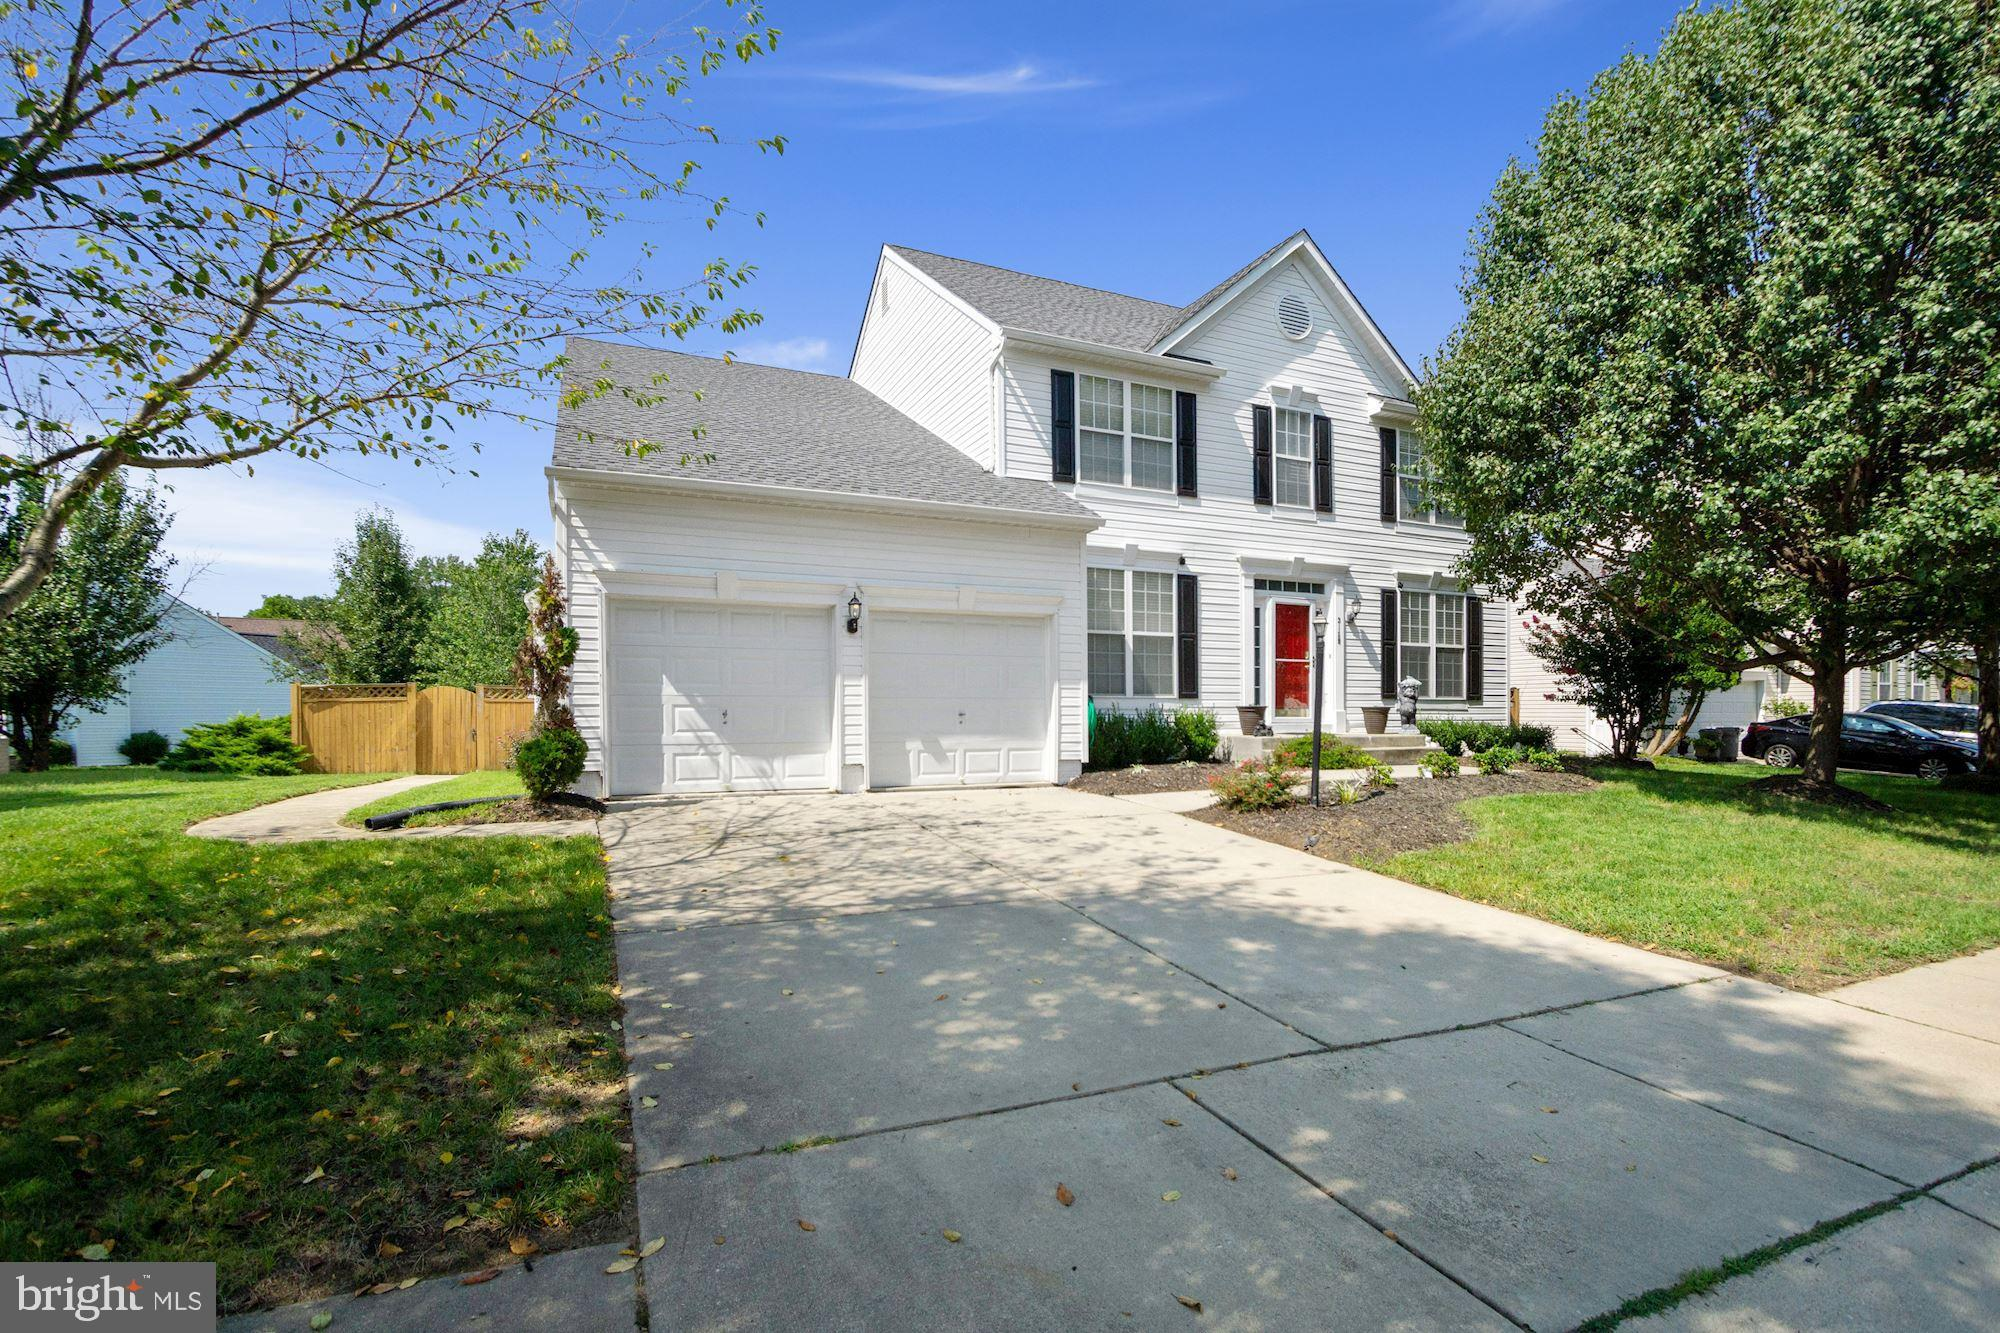 Well maintained home located  in the sought-after community of Charles Crossing.  Conveniently located  within an easy commute to Joint Base Andrews & Bolling, VA and National Harbor, as well a shopping .  The home features on the main level an office, gourmet kitchen with stainless steel appliances, with breakfast area that opens to the family room with a gas fireplace, as well as a laundry room.  The owner's suite, located on the second floor, is a wonderful retreat for rest and relaxation.  The en suite,  features a spa soaking tub an generous separate shower and dual vanities.  3 additional generous-sized bedrooms  and dual vanity full bath are located on this level.  The expansive lower level offers more opportunities for relaxation  and entertainment with a media room, work-out space, pool room and den/office.  Pool and Community Center access are available through, and an amenity of the Charles Crossing HOA.